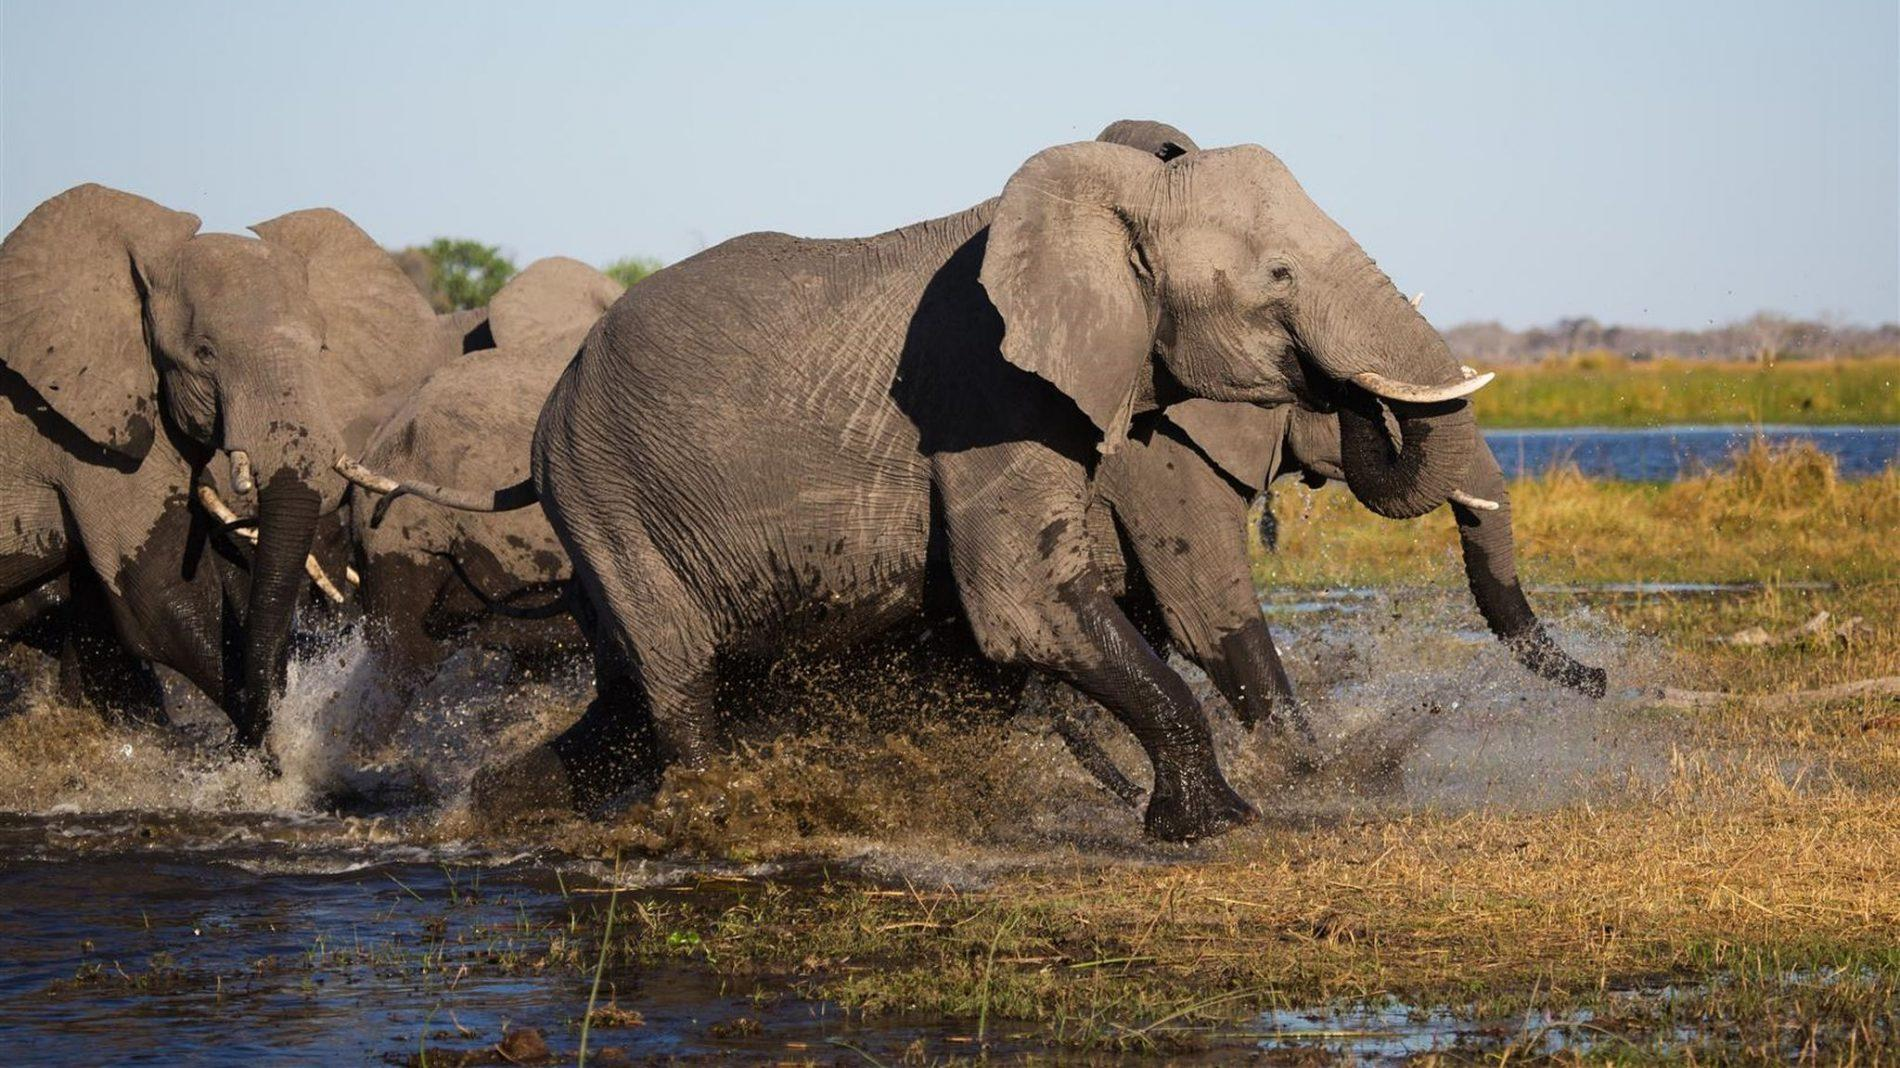 Elephants running through the Chobe River.